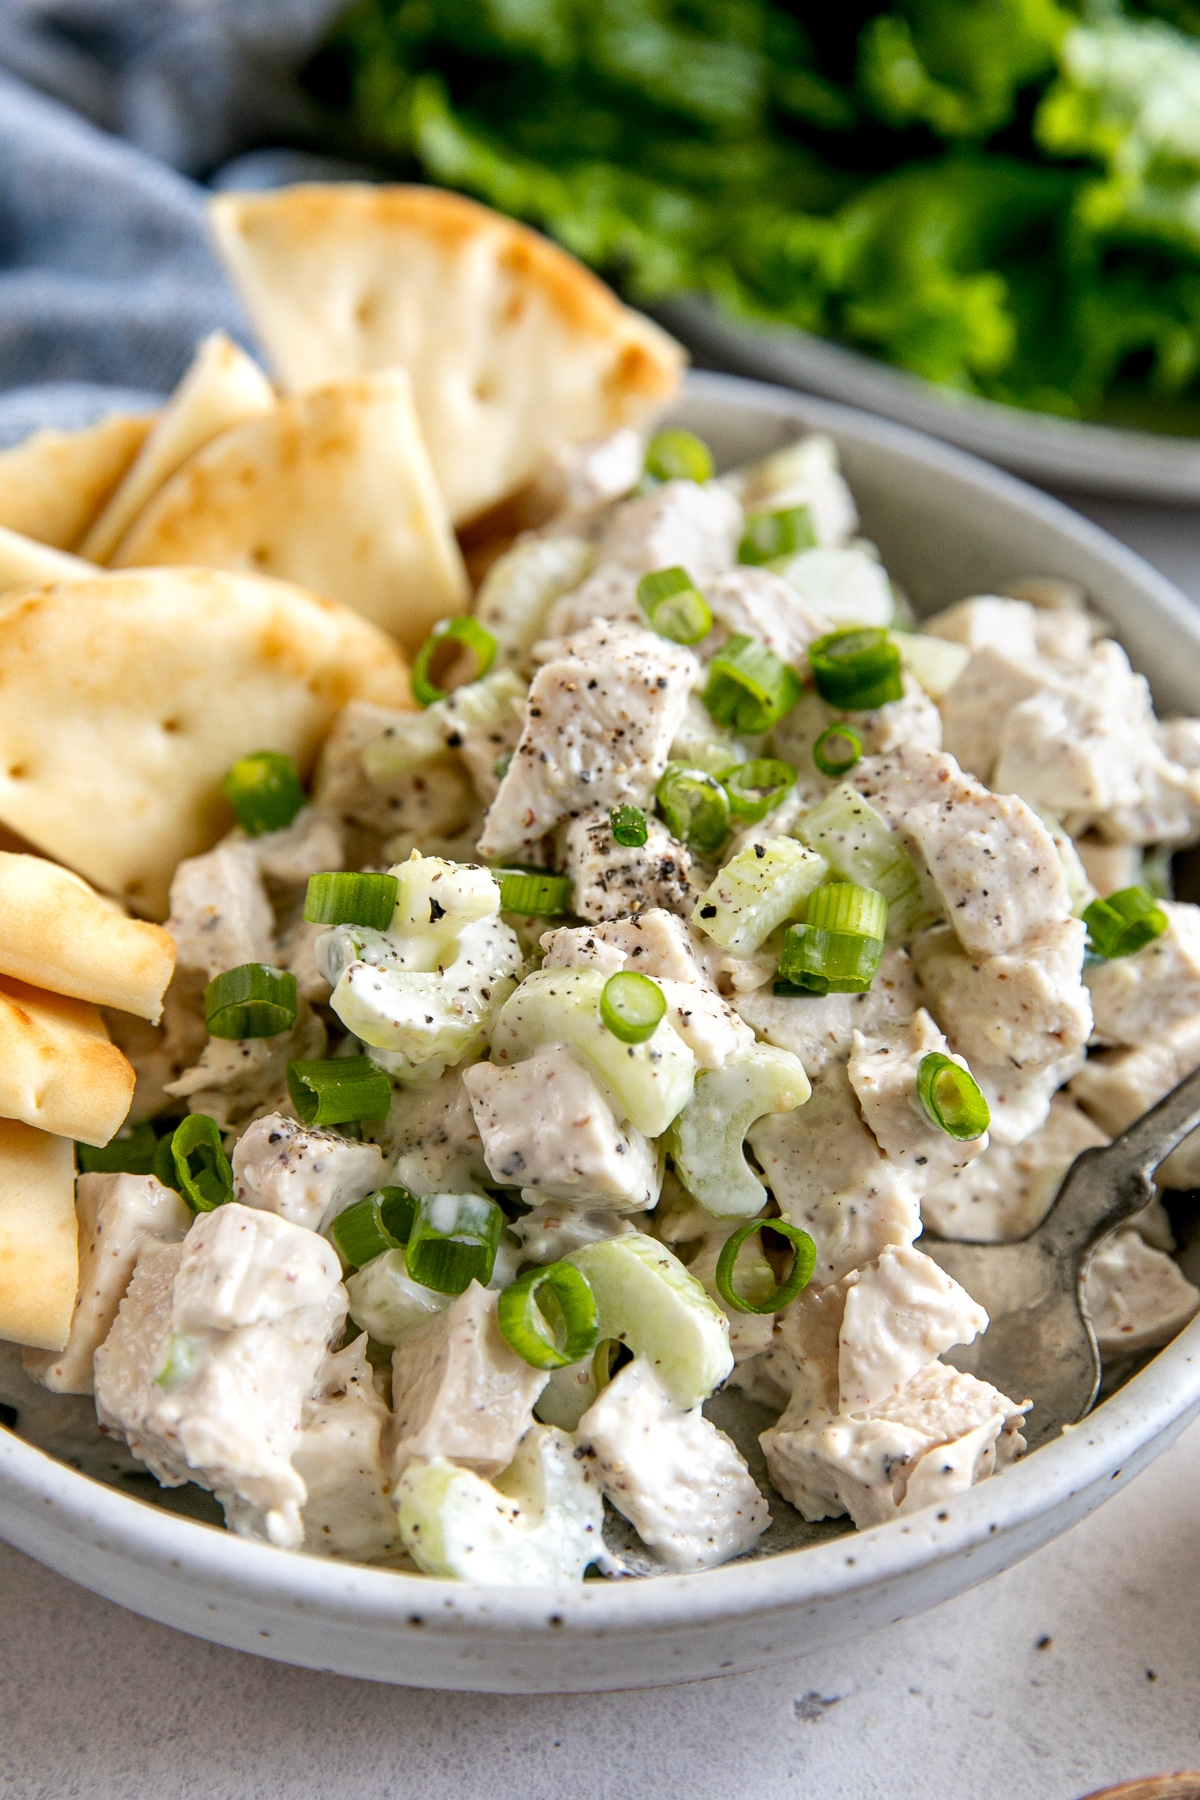 Easy Chicken Salad Recipe - The Forked Spoon